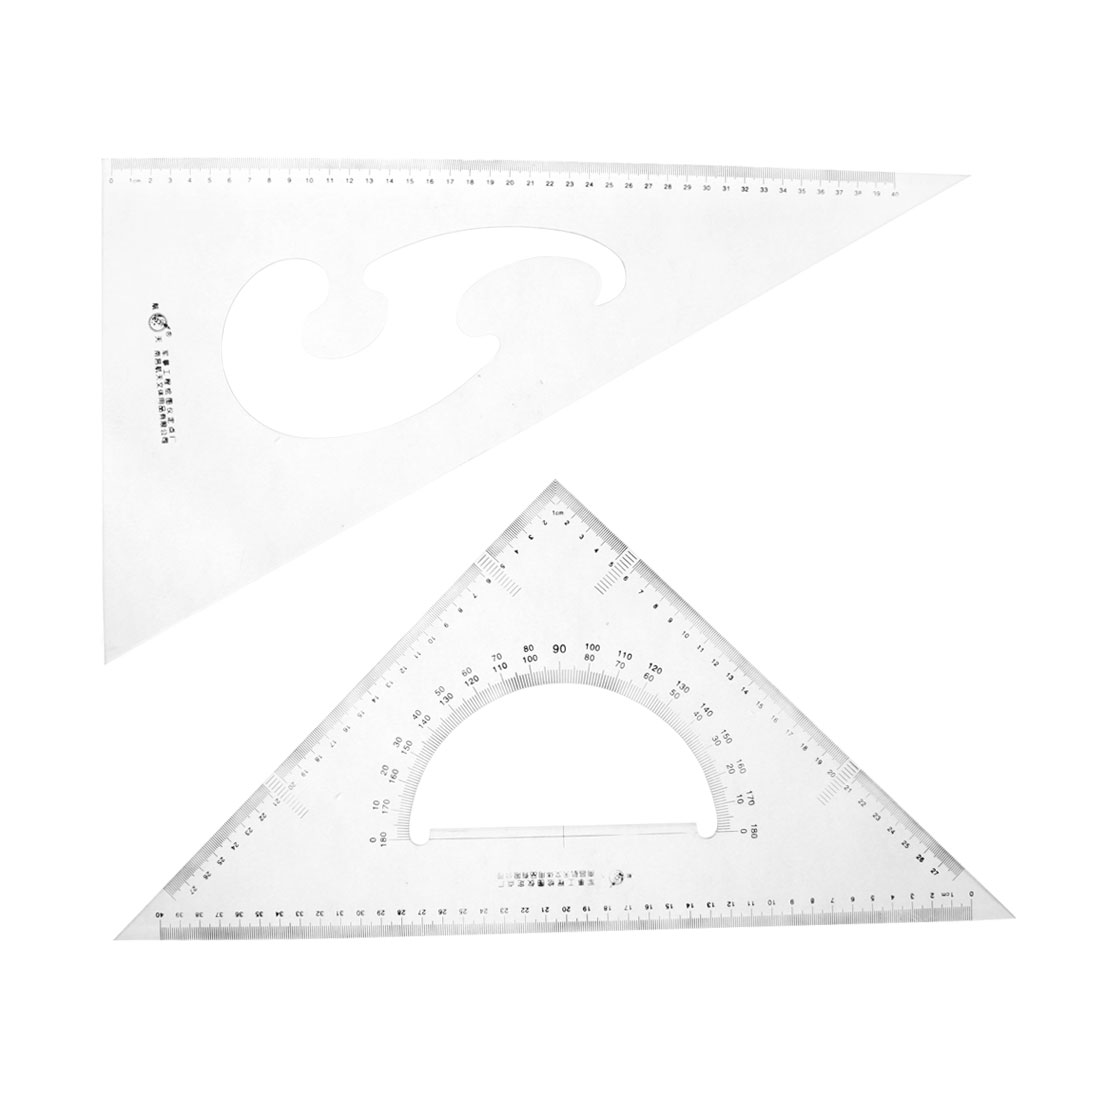 Student Stationery 30/60 45 Degree Triangle Rulers Protractor Measure Set 2 Pcs